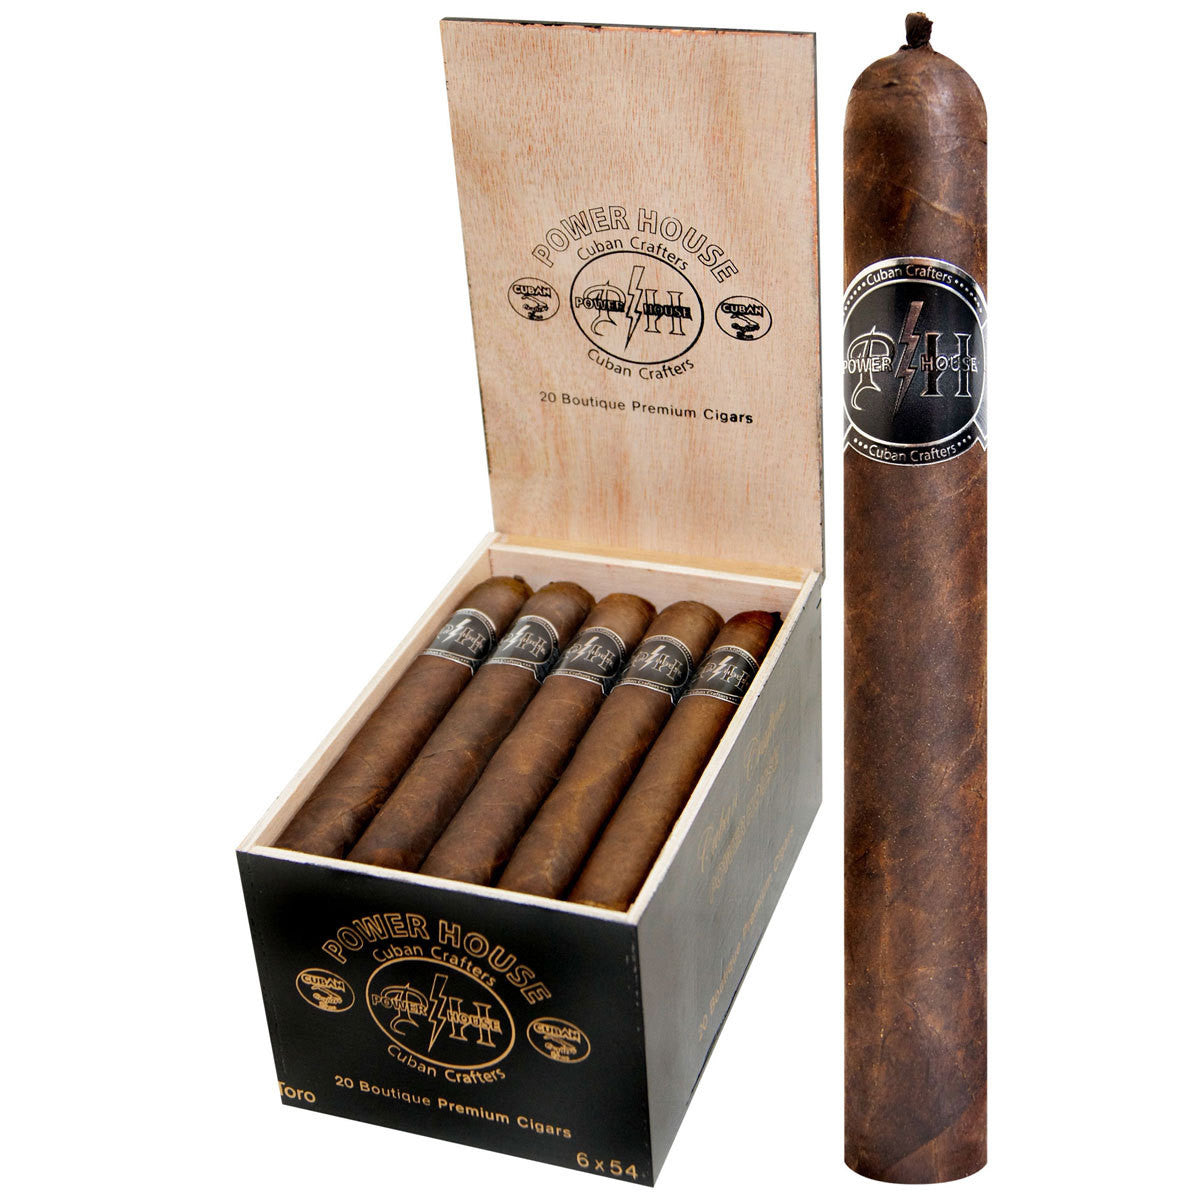 Cuban Crafters Power House Cigars Boxes of 20 - Cigar boulevard